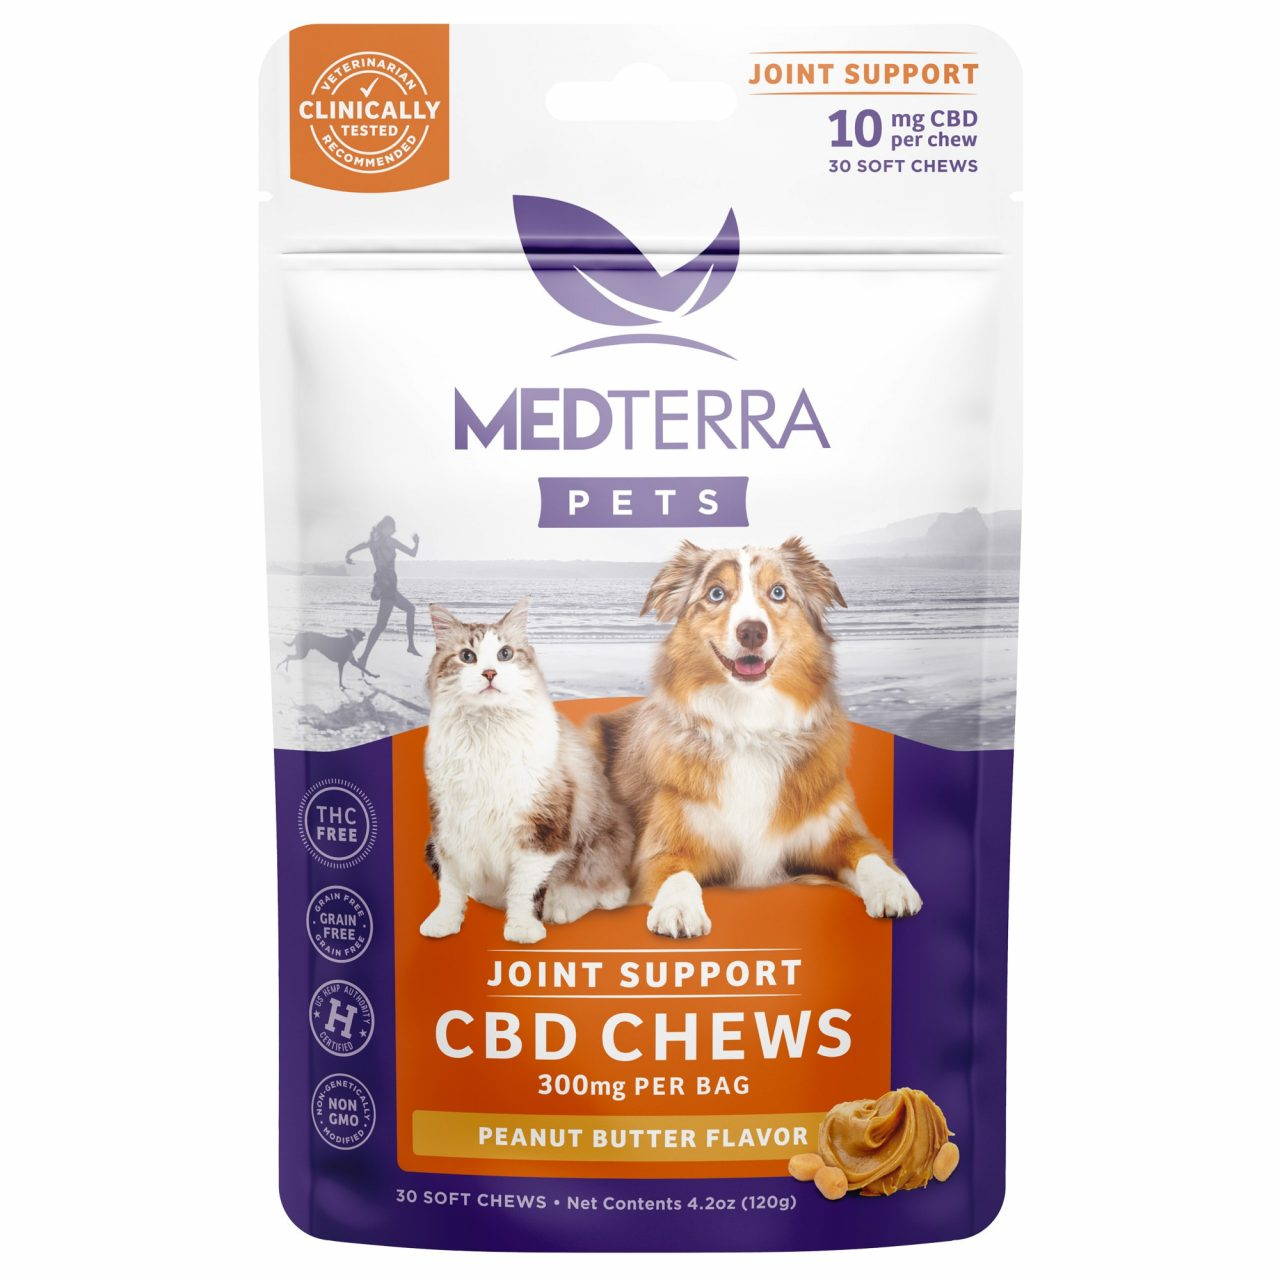 Medterra, Joint Support CBD Chews for Dogs & Cats, Isolate THC-Free, Peanut Butter, 30ct, 300mg CBD 1